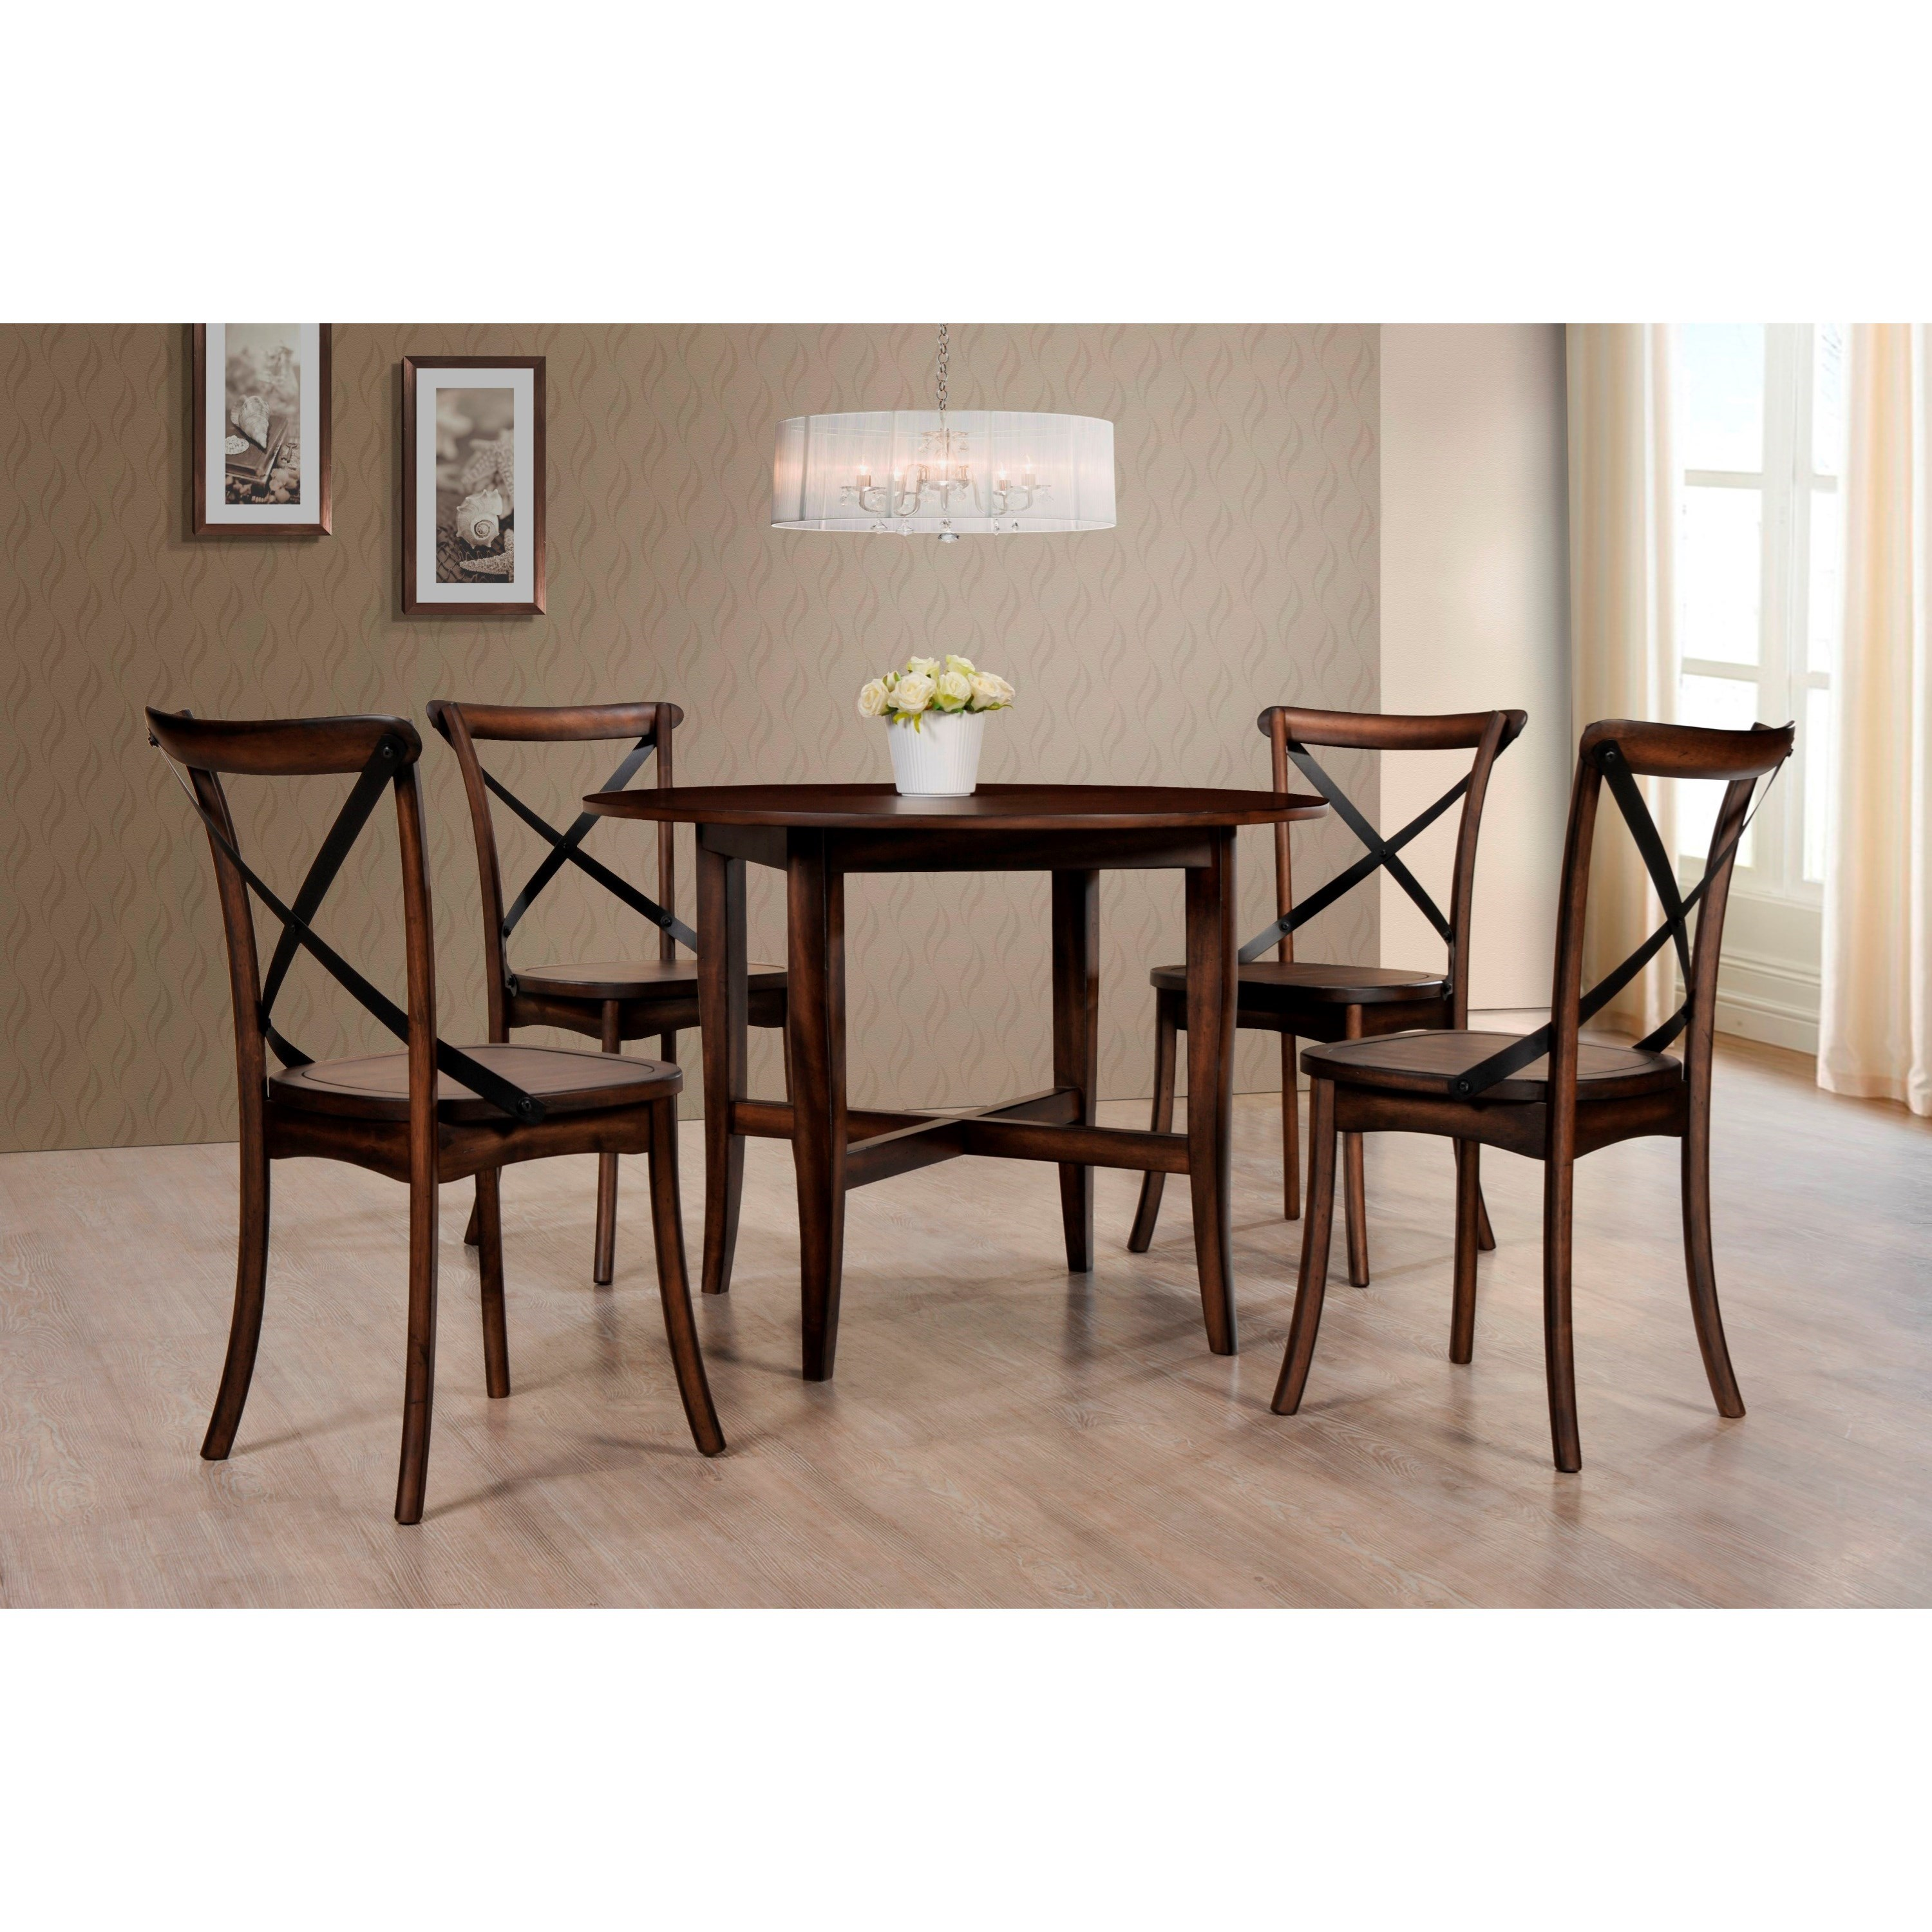 pewter kitchen table and chairs quatropi swing chair crown mark farris 2285t 48 dining round with